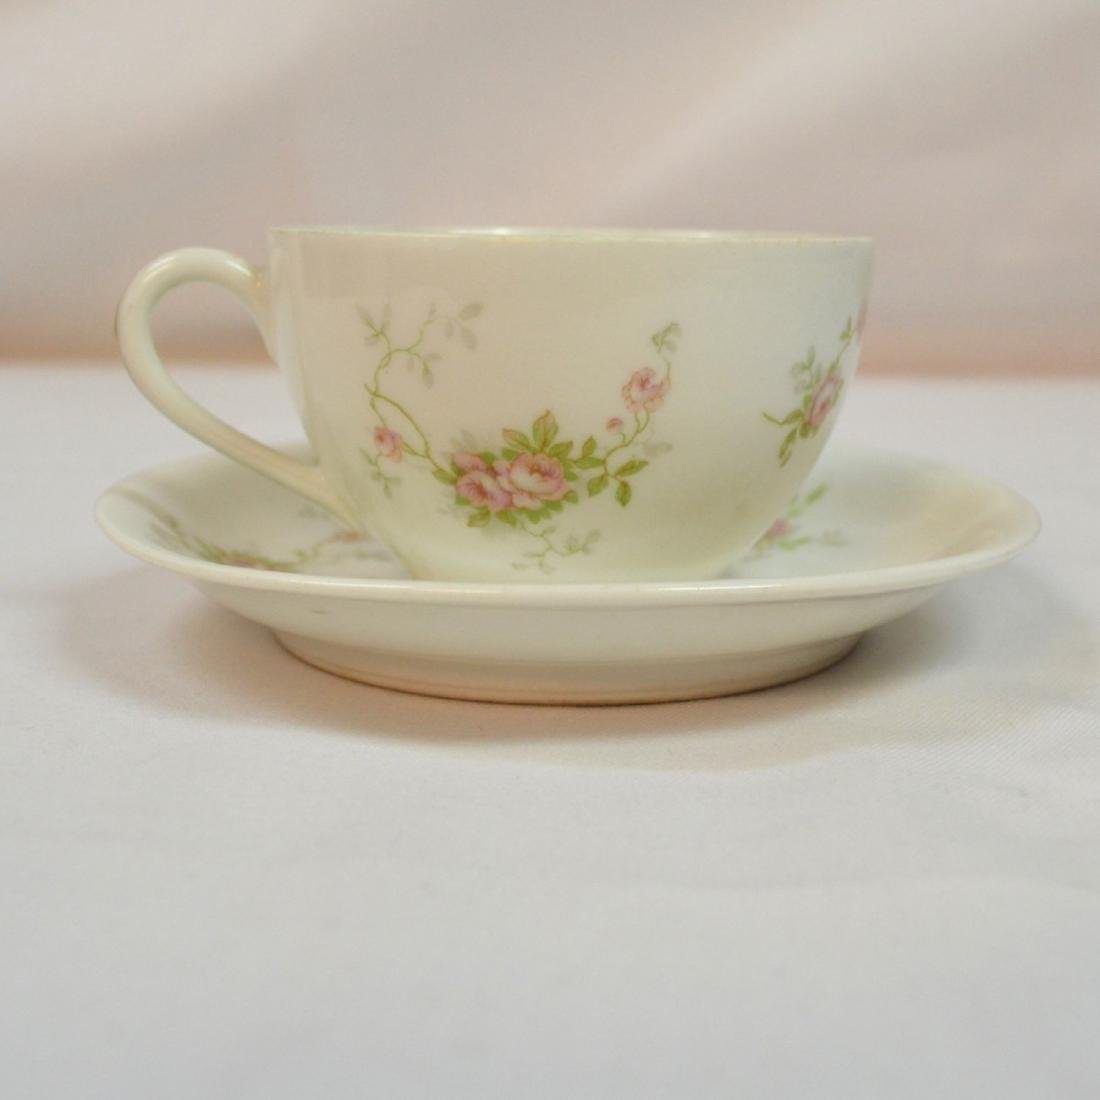 Antique Limoges Teacup and Saucer France - 3